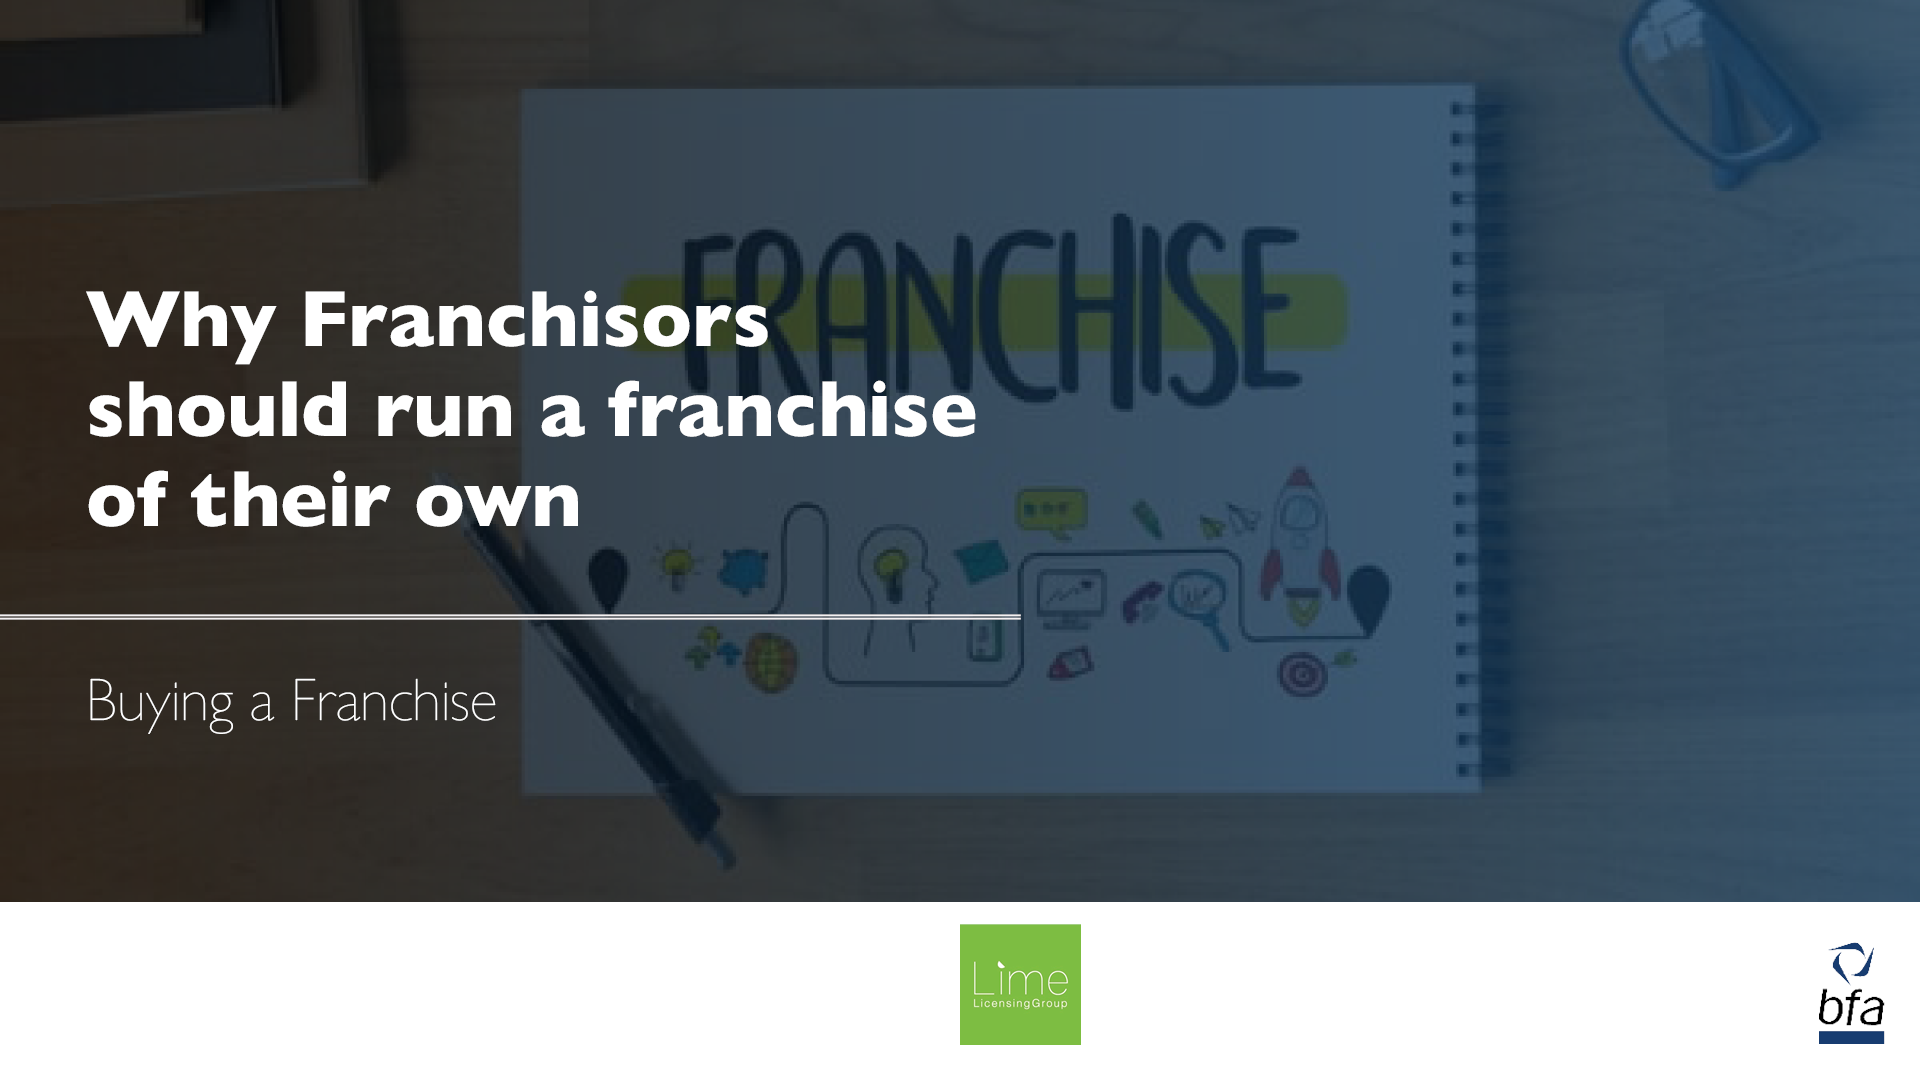 Why Franchisors should run a franchise of their own by Andy Cheetham